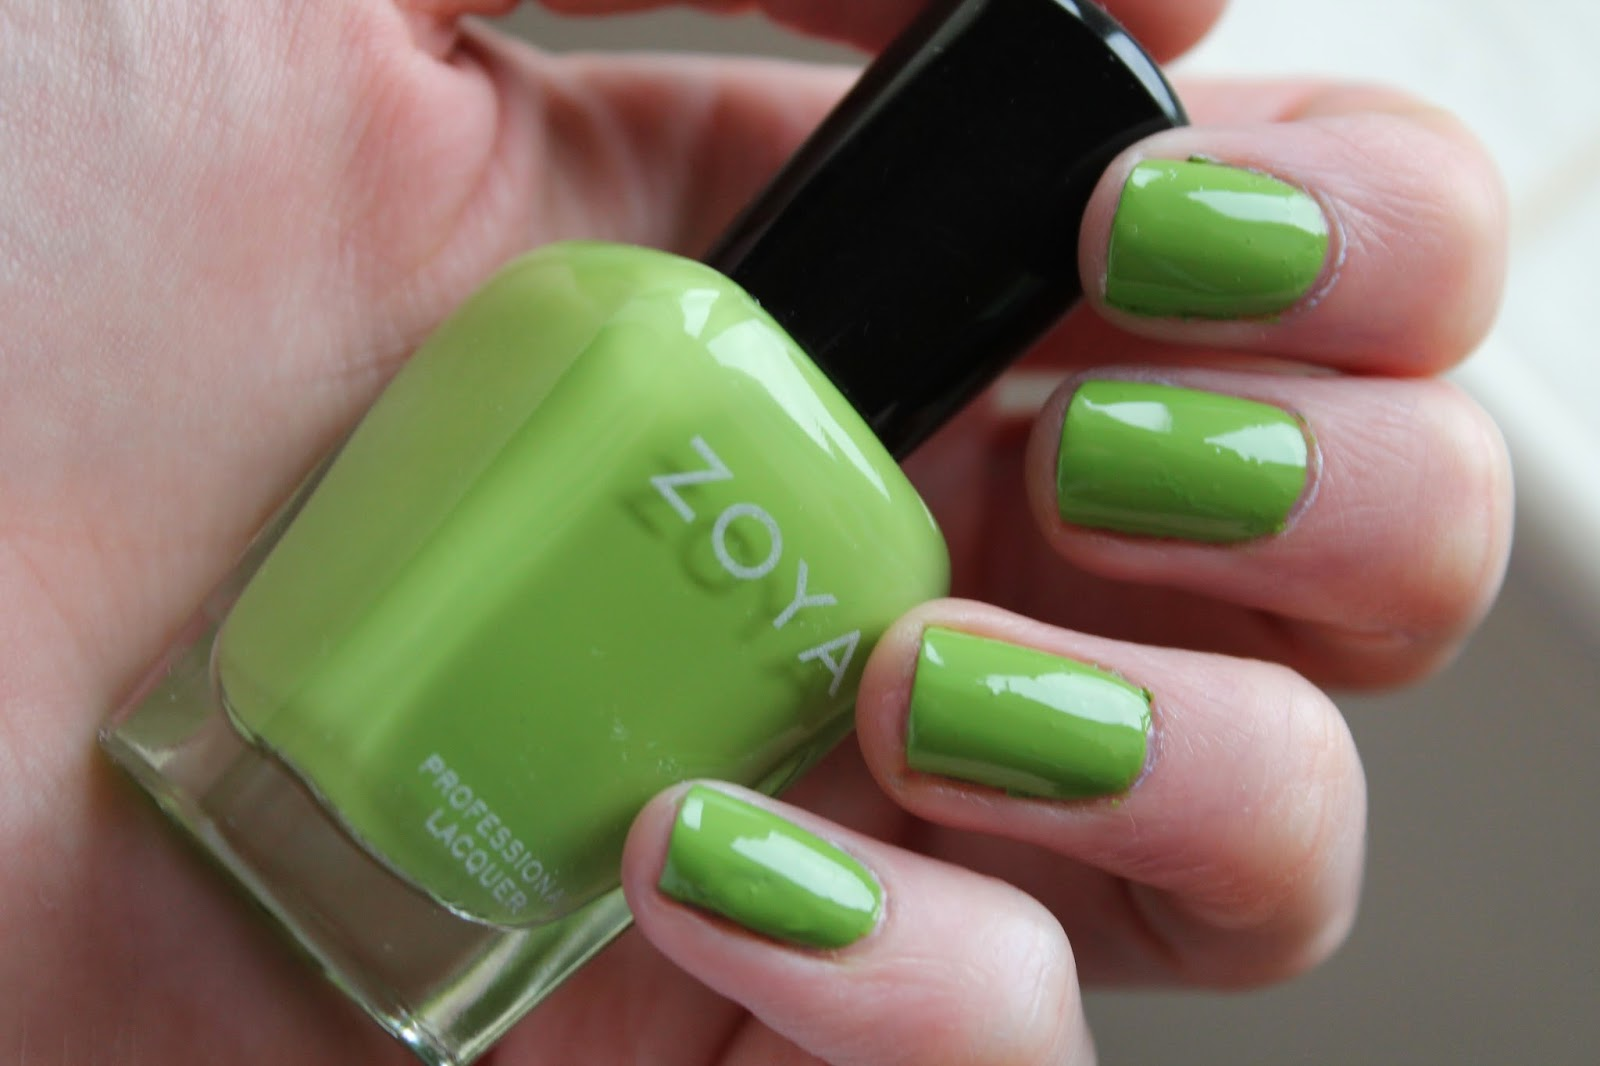 Zoya Nail Laquer Polish - Tilda Green Tickled Collection Swatch